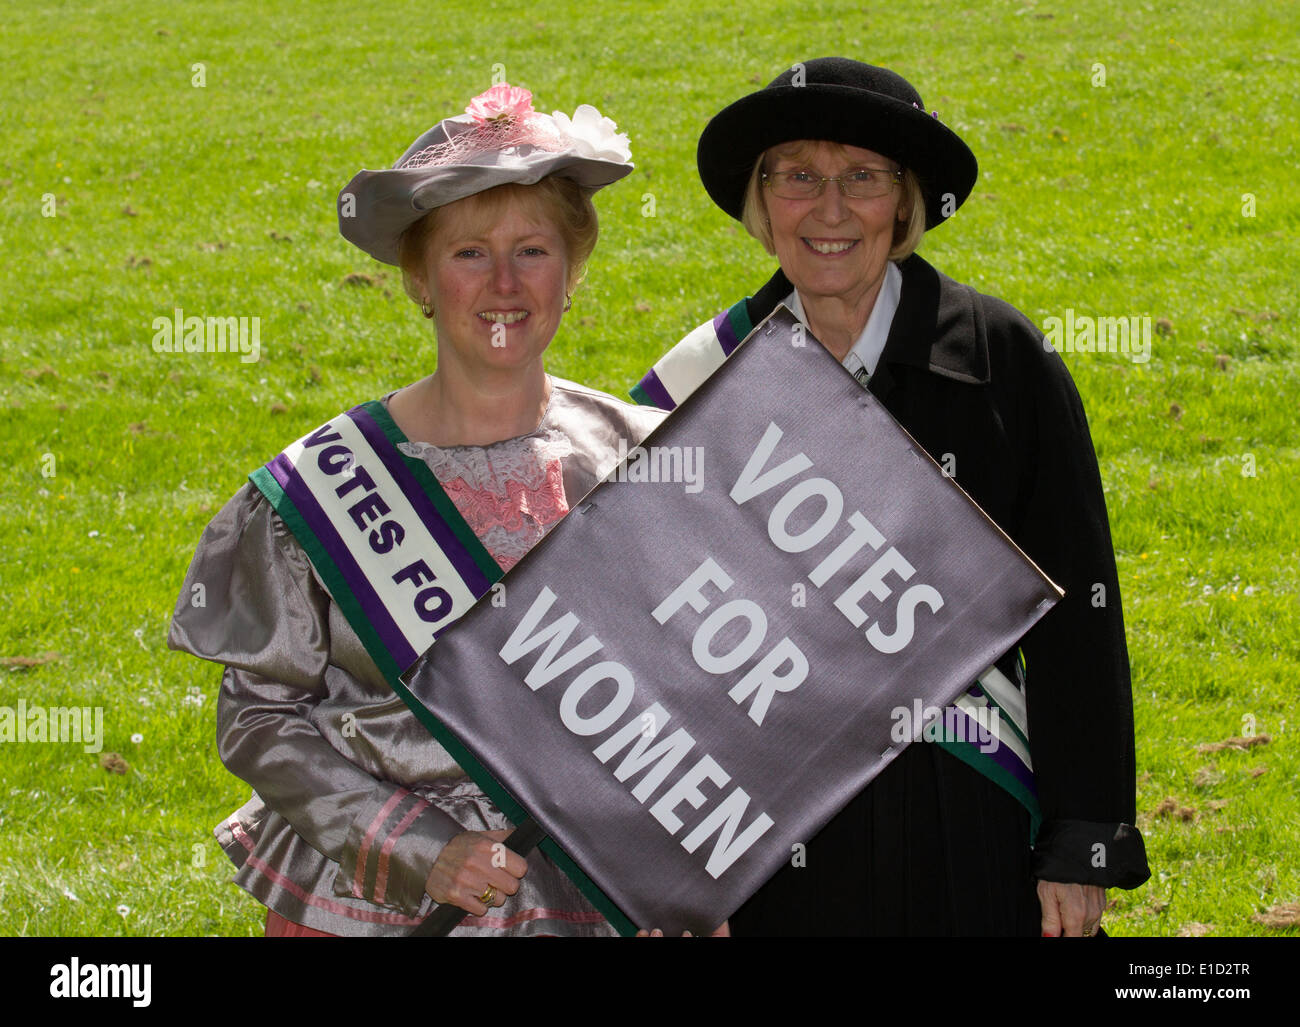 Votes for women suffrage, a woman seeking the right to vote through organized protest. Suffragettes fancy dress 1903 period outfits for adults with placards in Preston, UK 31st May, 2014.  Goosnargh & Whittingham Whitsuntide Festival.  This wonderful piece of English Heritage, which took place on a gloriously sunny Saturday,  is organised by the Festival Committee and a group of hugely dedicated friends in Goosnargh & Whittingham, close to the city of Preston in Lancashire, North West England. Stock Photo